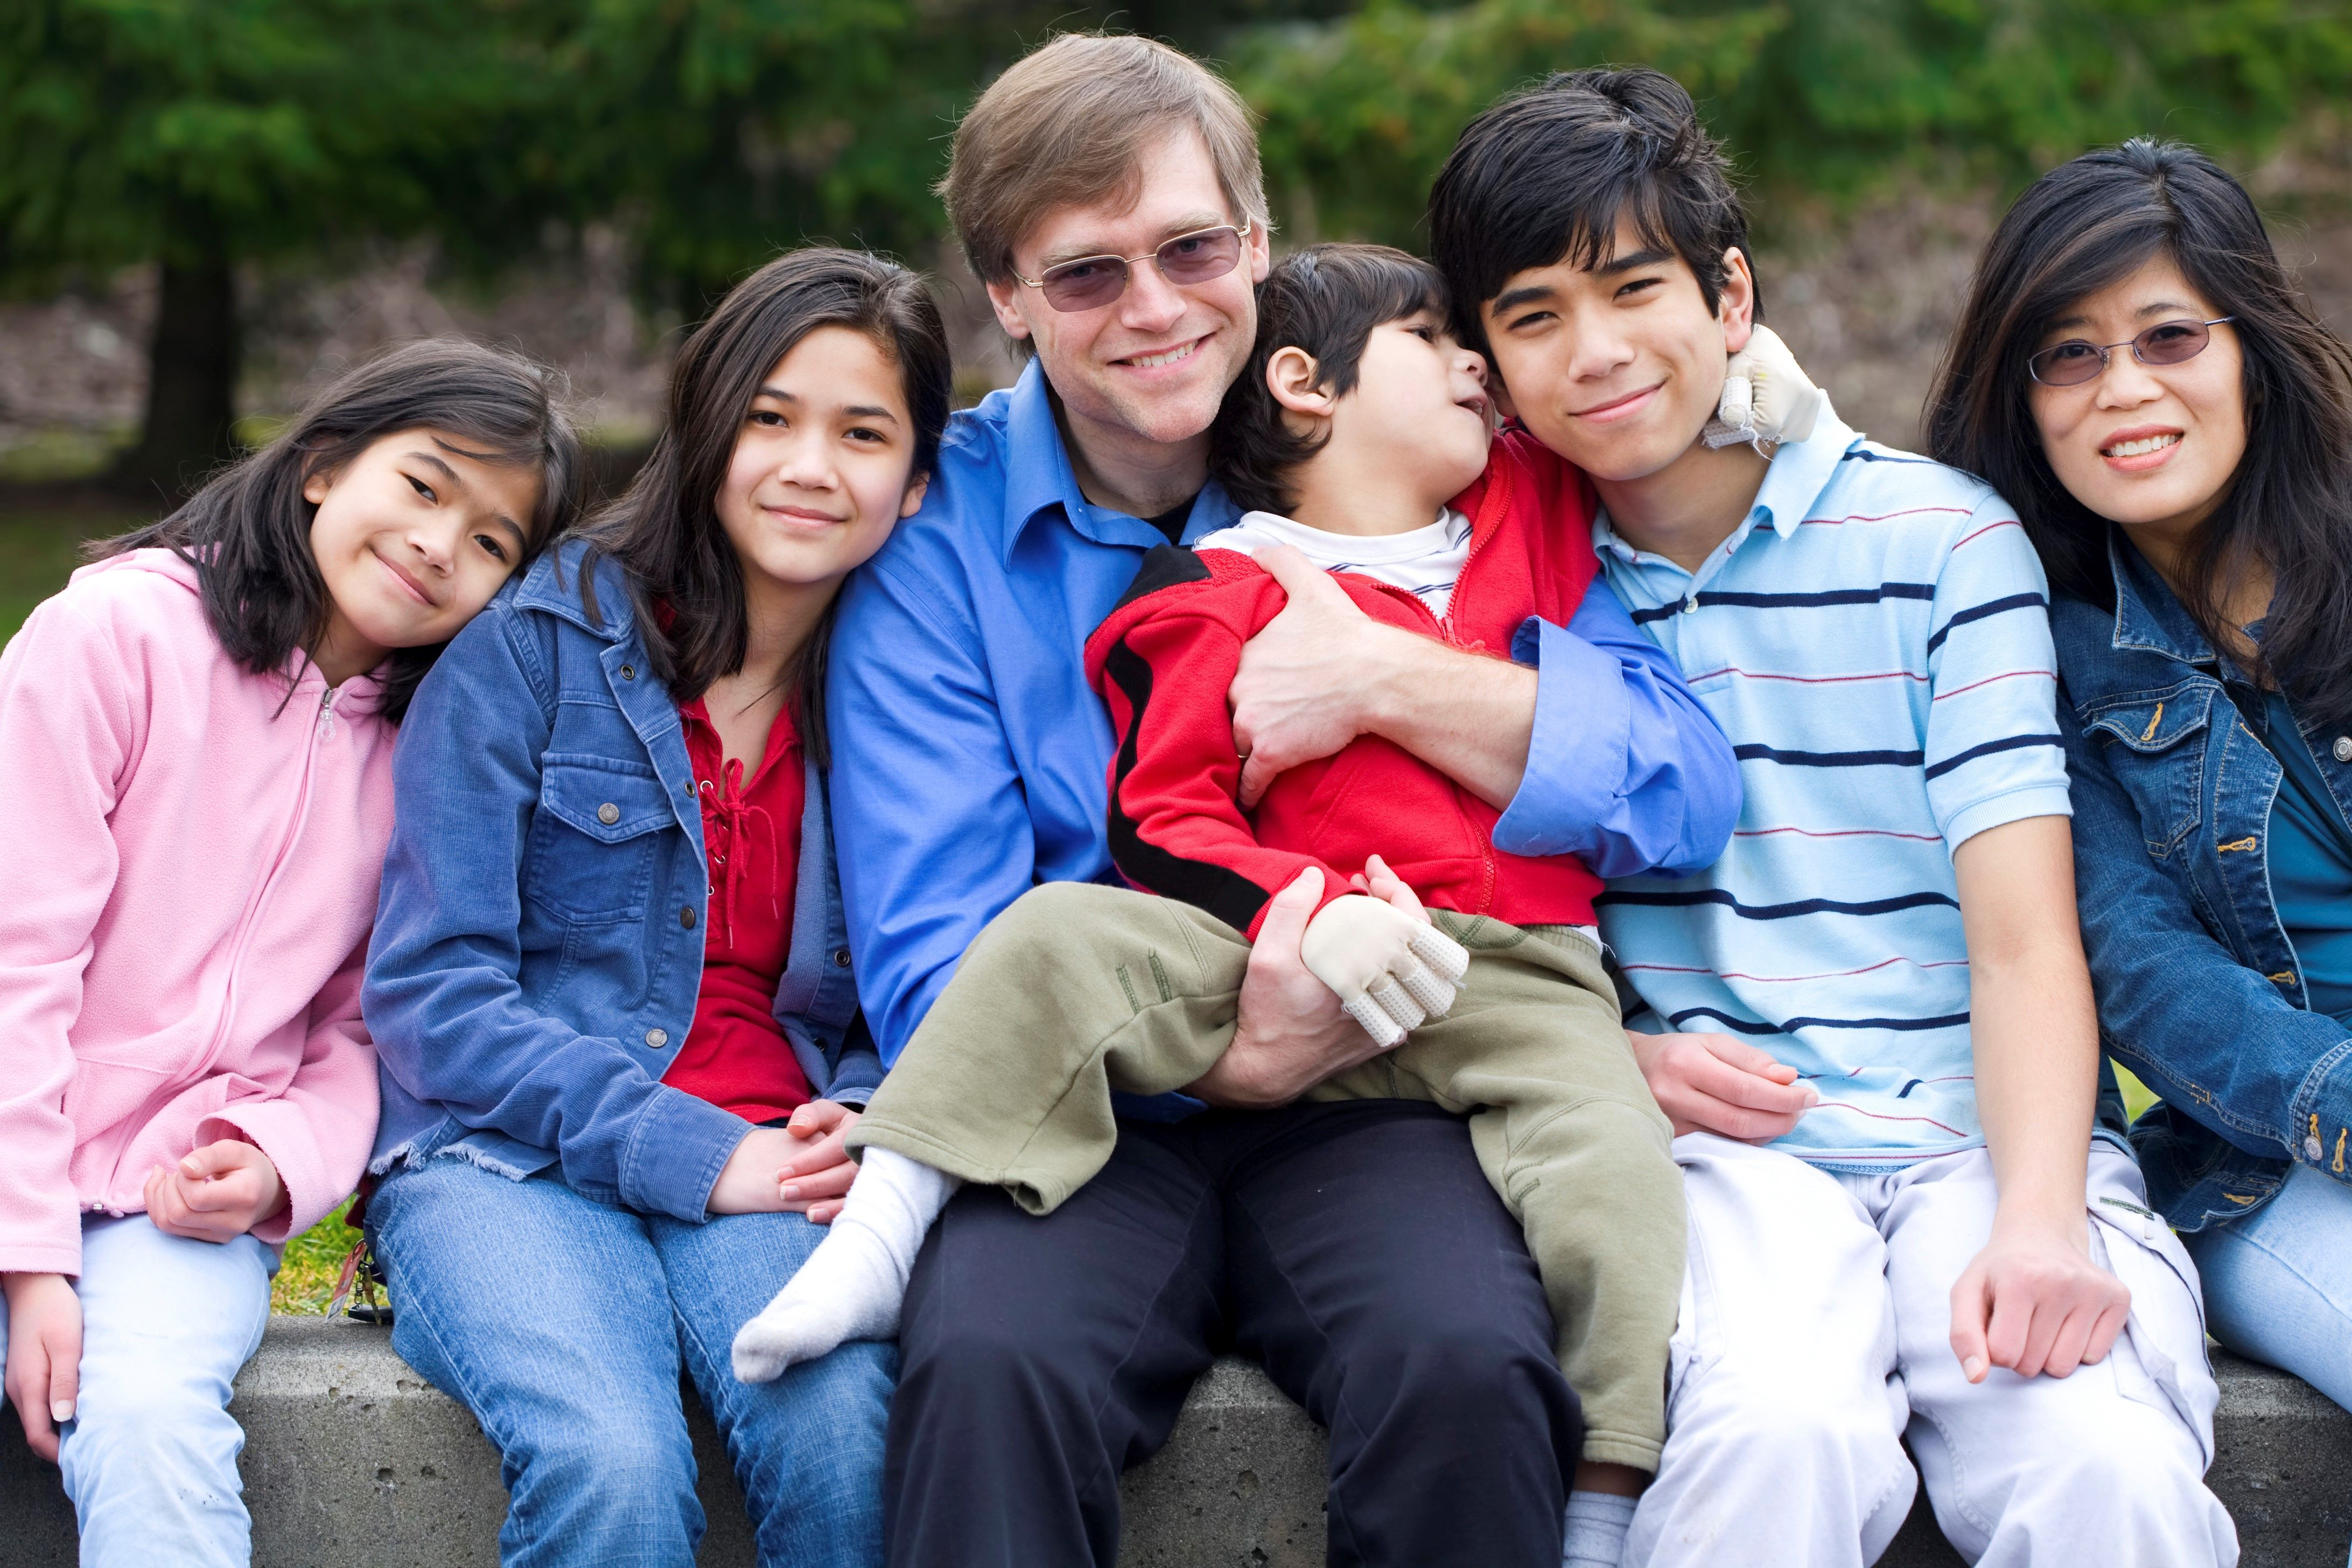 Family with a young child who has a developmental disability.